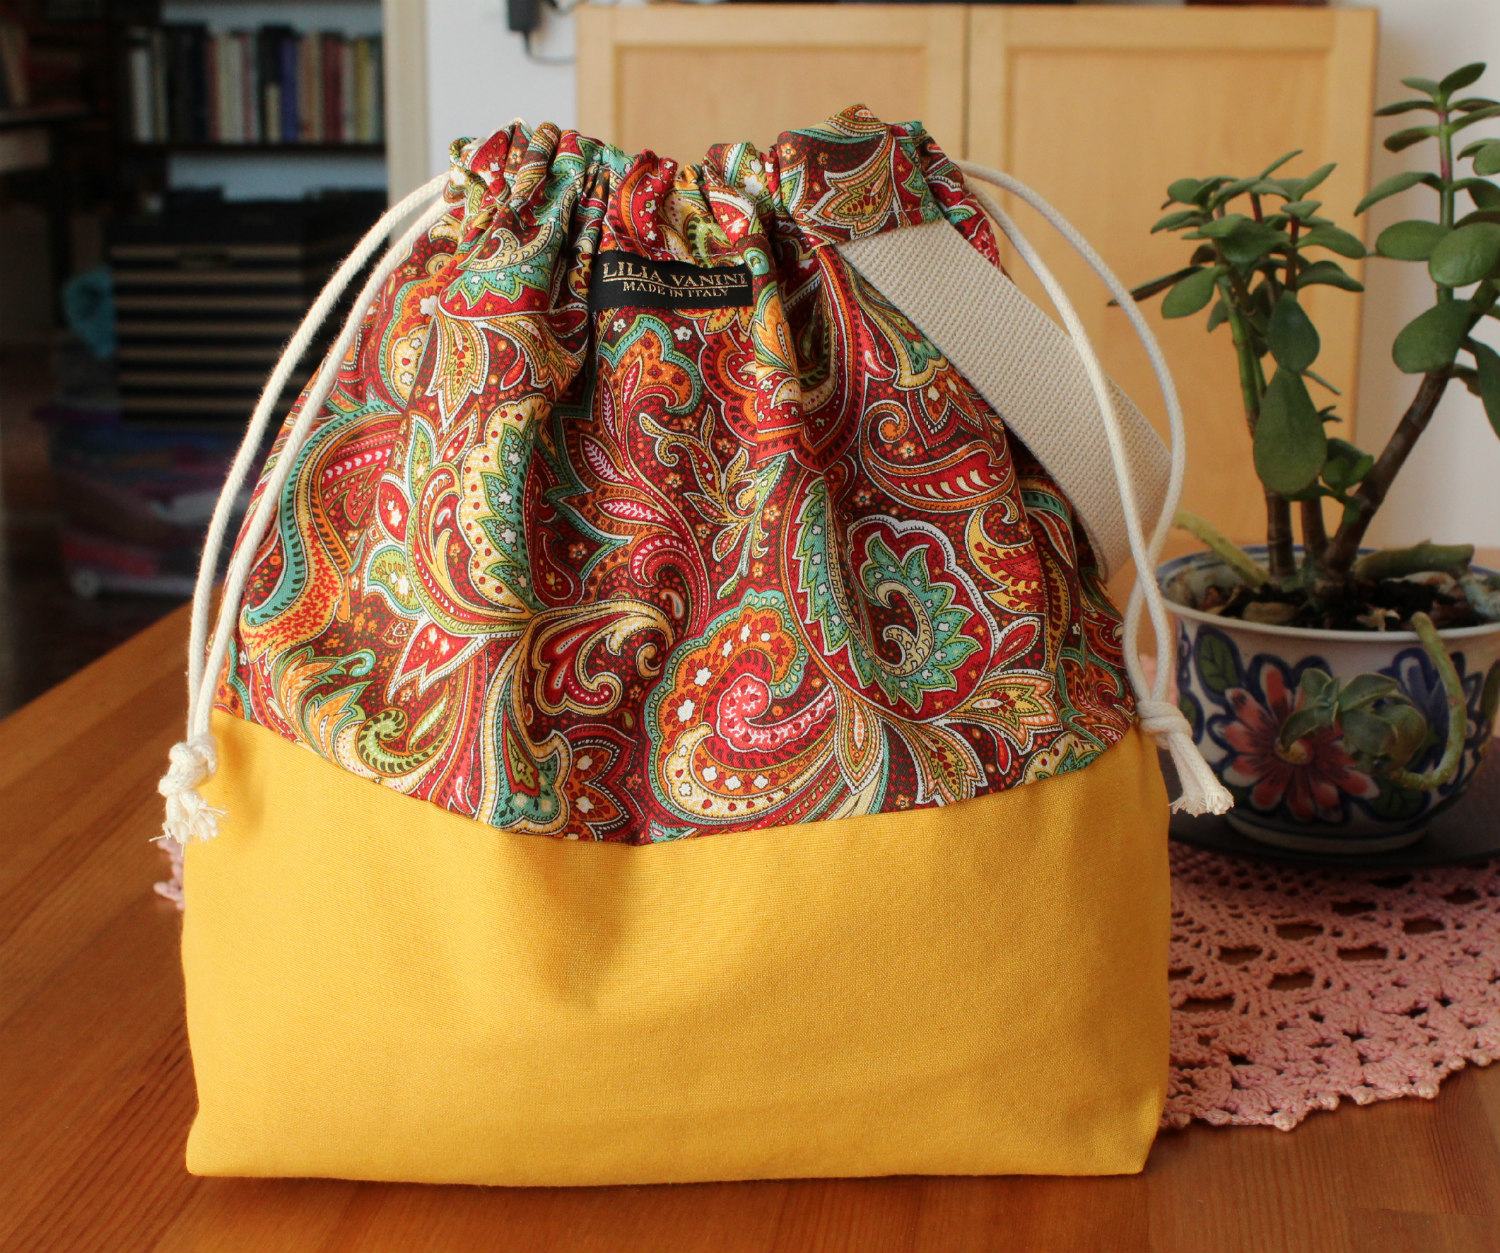 drawstring Knitting Project Bag yellow and floral paisley design with wristlet handle handmade by Lilia Vanini Liliacraftparty